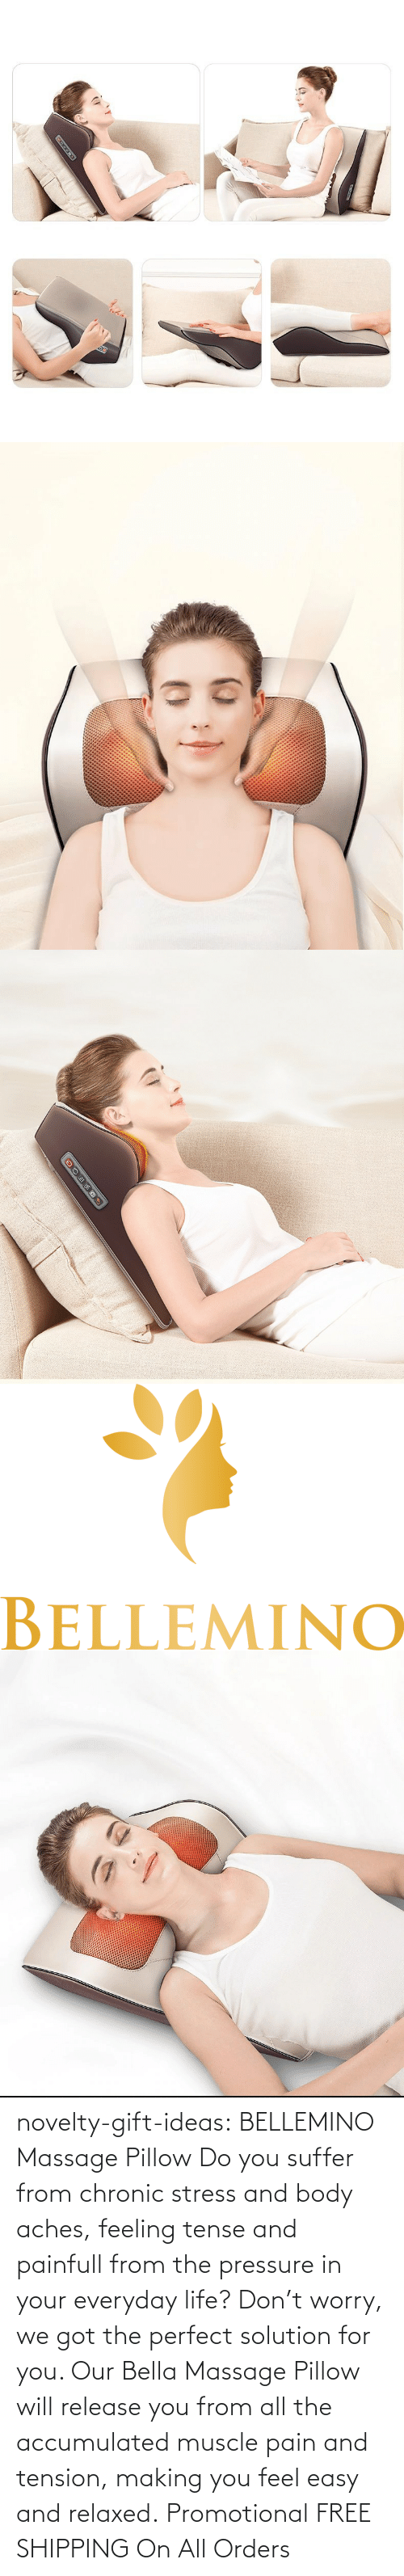 Free: novelty-gift-ideas:   BELLEMINO Massage Pillow     Do you suffer from chronic stress and body aches, feeling tense and painfull from the pressure in your everyday life? Don't worry, we got the perfect solution for you. Our Bella Massage Pillow will release you from all the accumulated muscle pain and tension, making you feel easy and relaxed.     Promotional FREE SHIPPING On All Orders